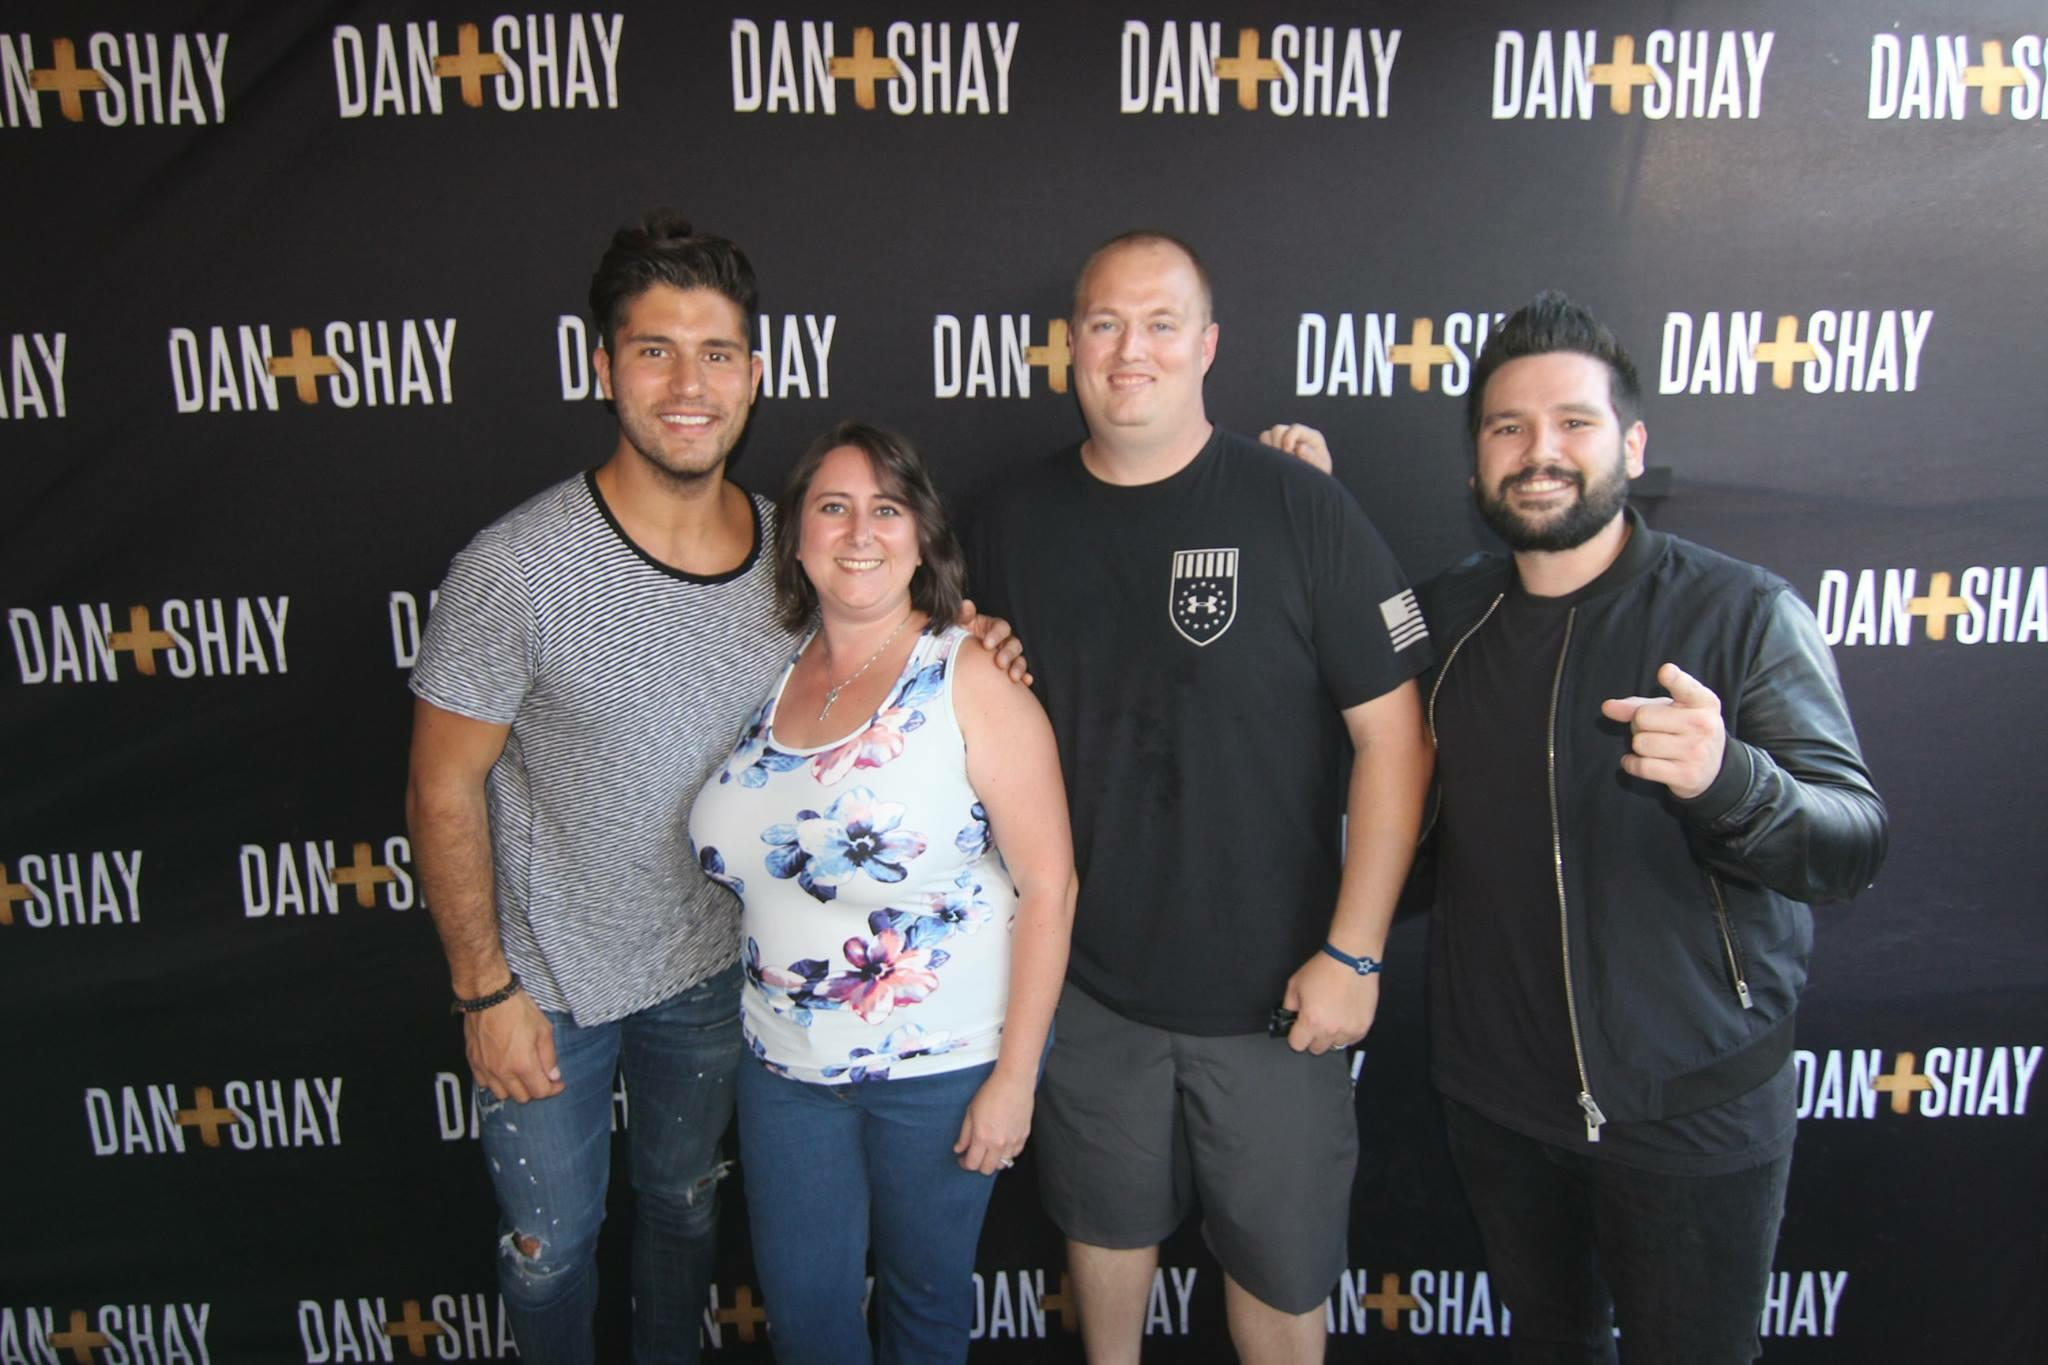 Meet and greet with dan shay at wmzq fall fest wmzq fall fest meet and greet with dan shay at wmzq fall fest wmzq fall fest 987 wmzq kristyandbryce Images